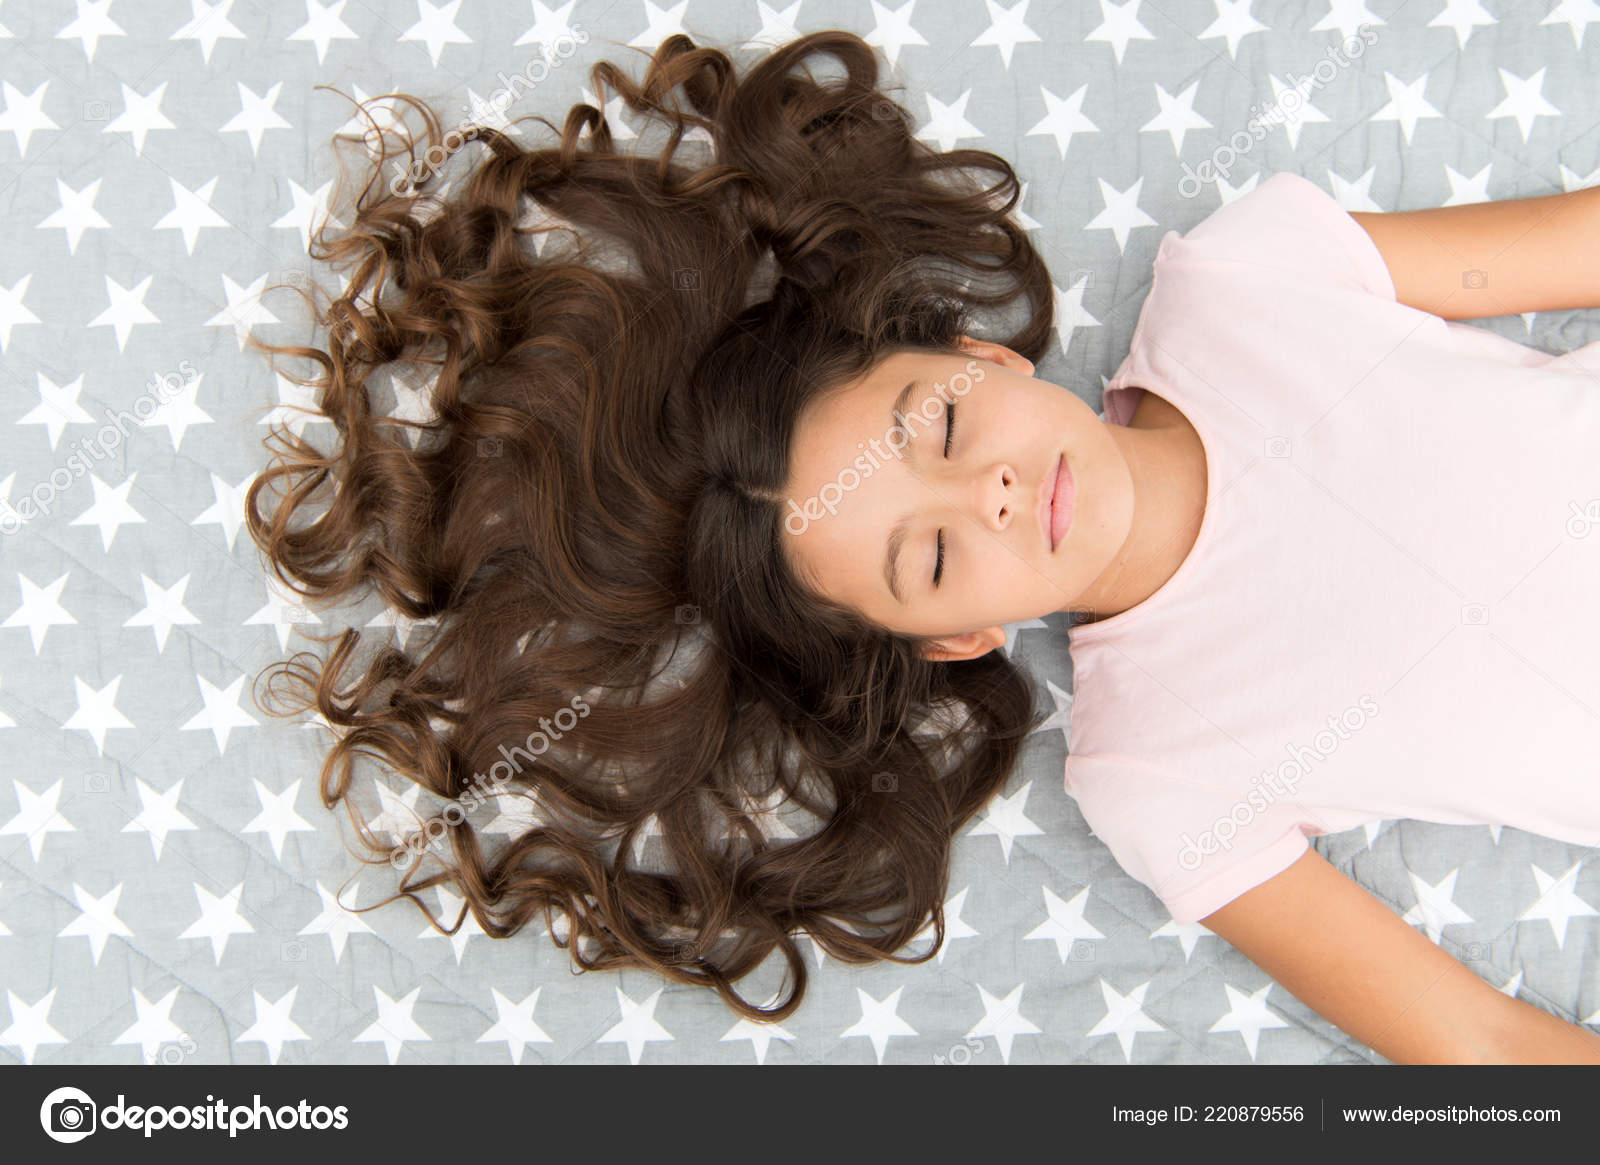 Childrens Hairstyles For Curly Hair Kid Perfect Curly Hairstyle Conditioner Mask Organic Oil Keep Hair Shiny And Healthy Amazing Curls Tips Make It Curly But Natural Girl Long Curly Hair Lay